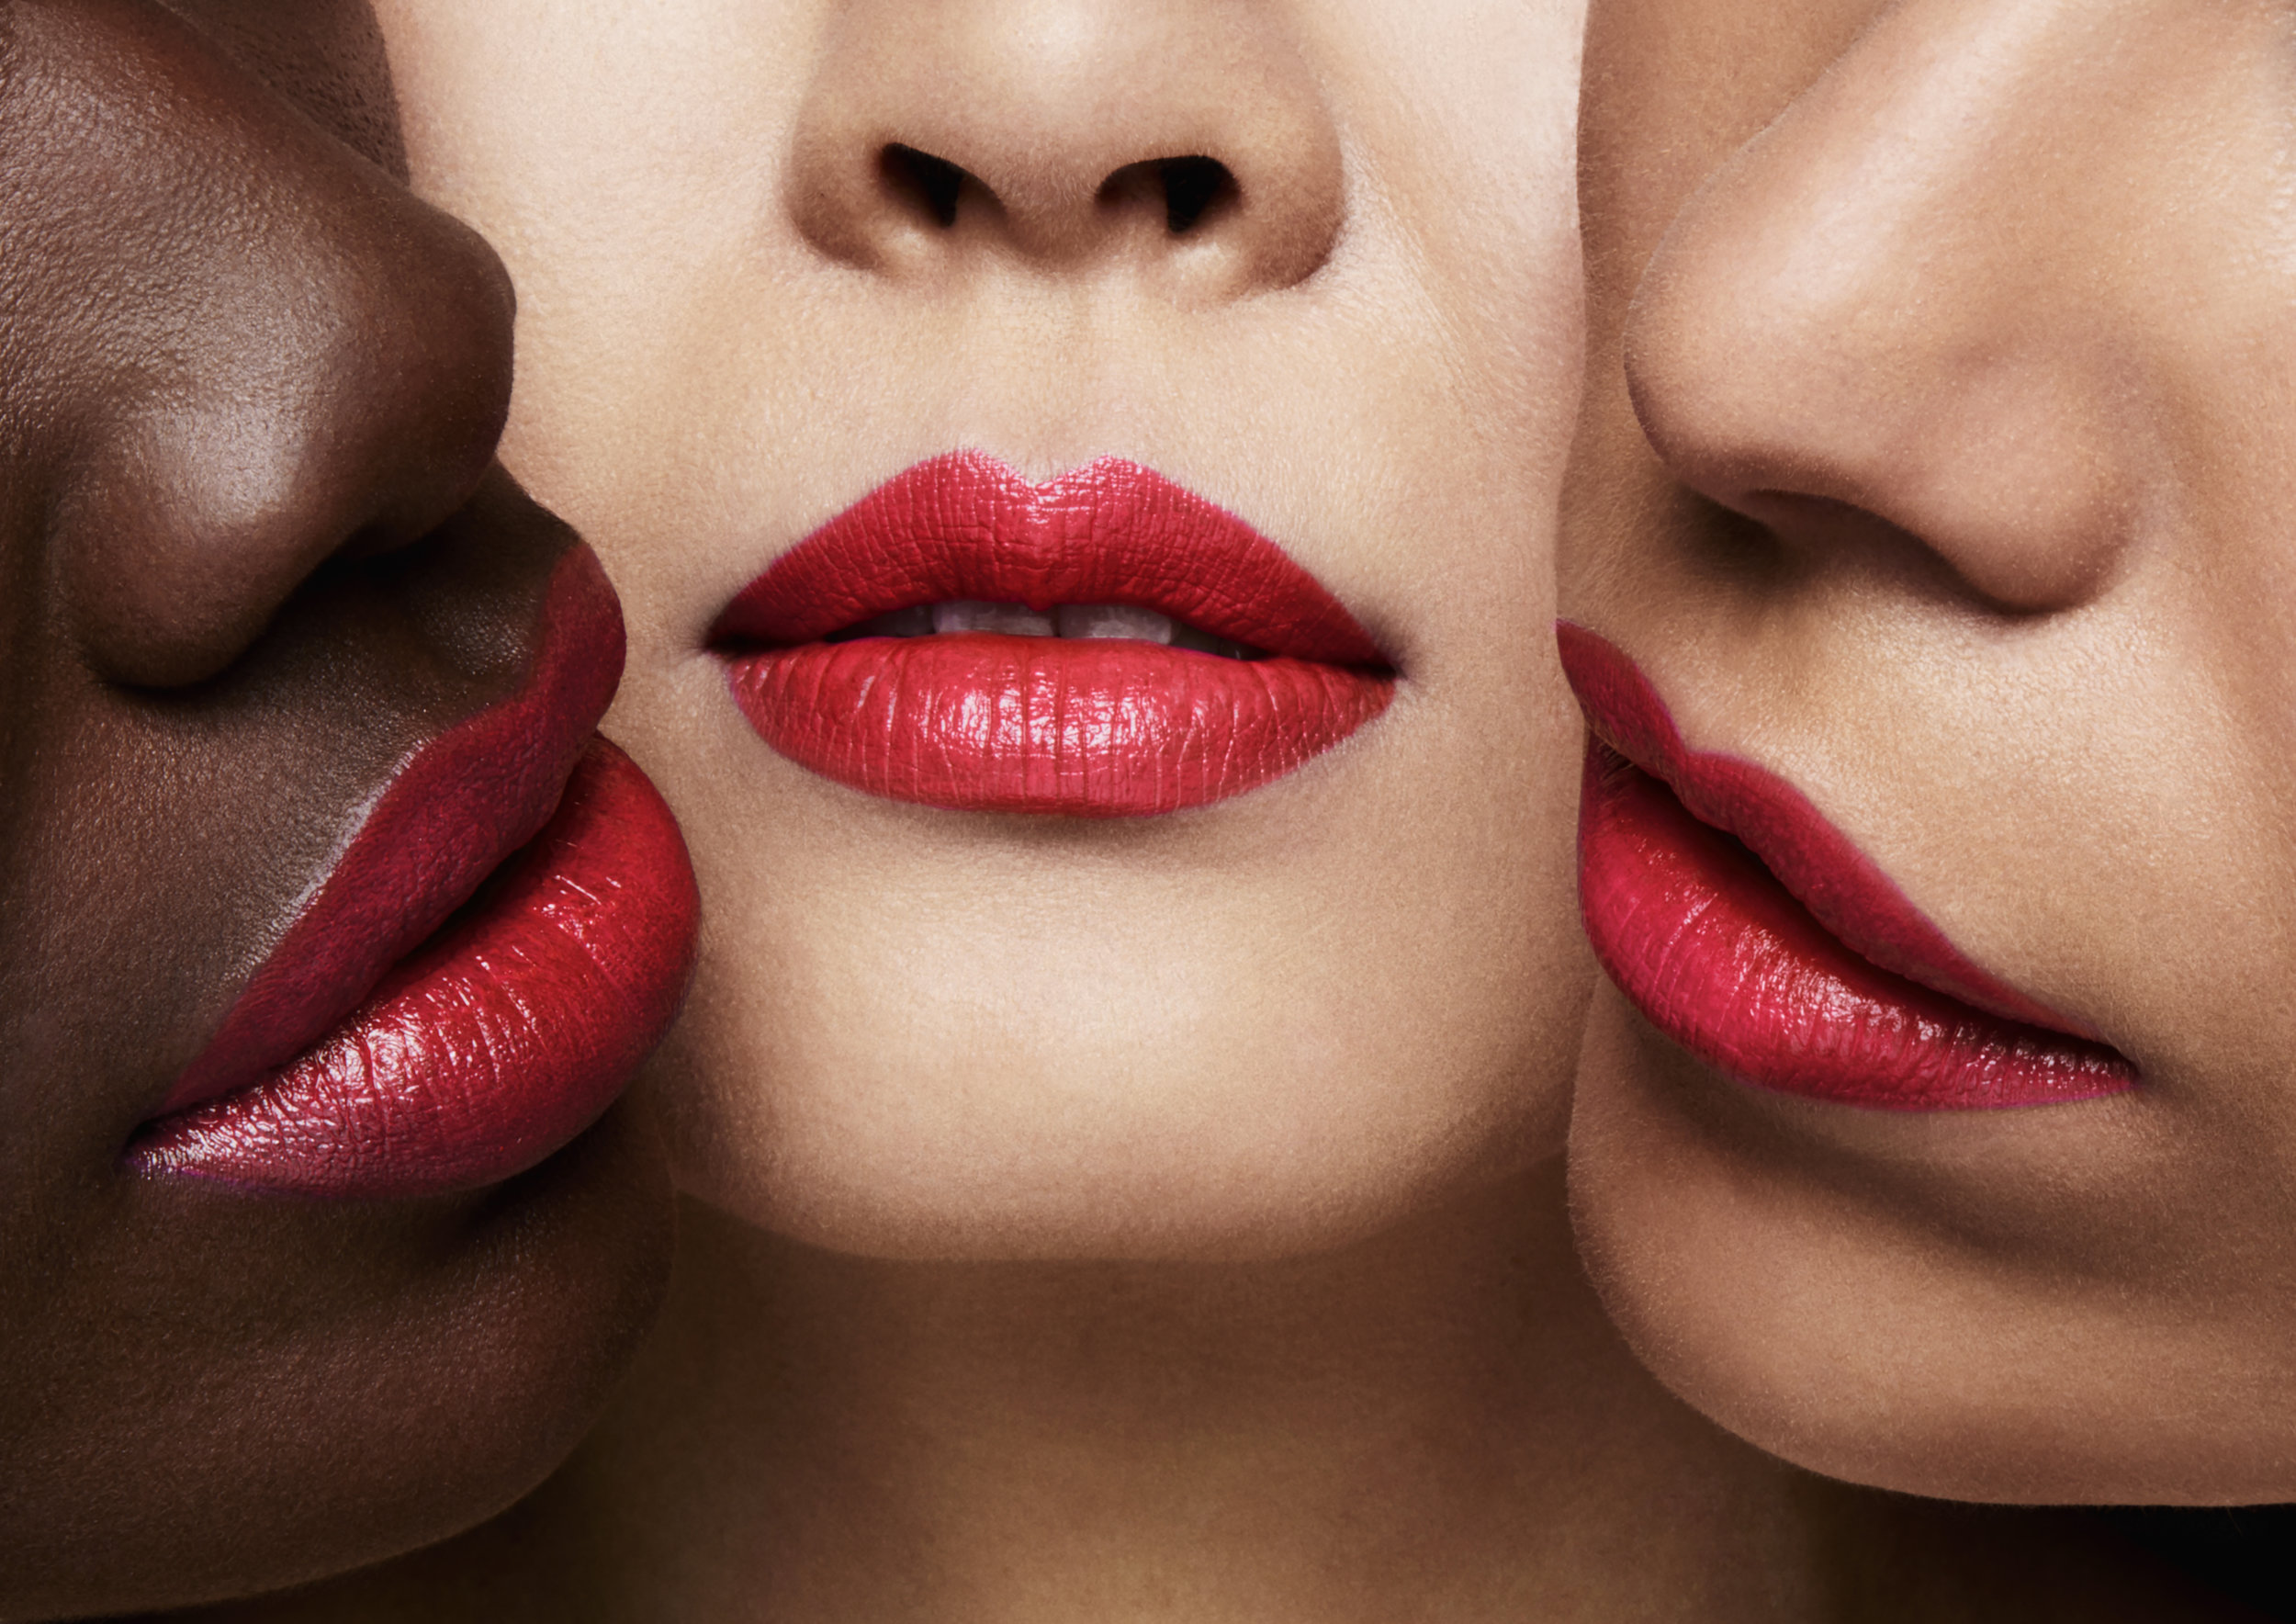 BeautyPhotography_TomFordBeauty_LipstickEditorial_By_BriJohnson_0005.jpg